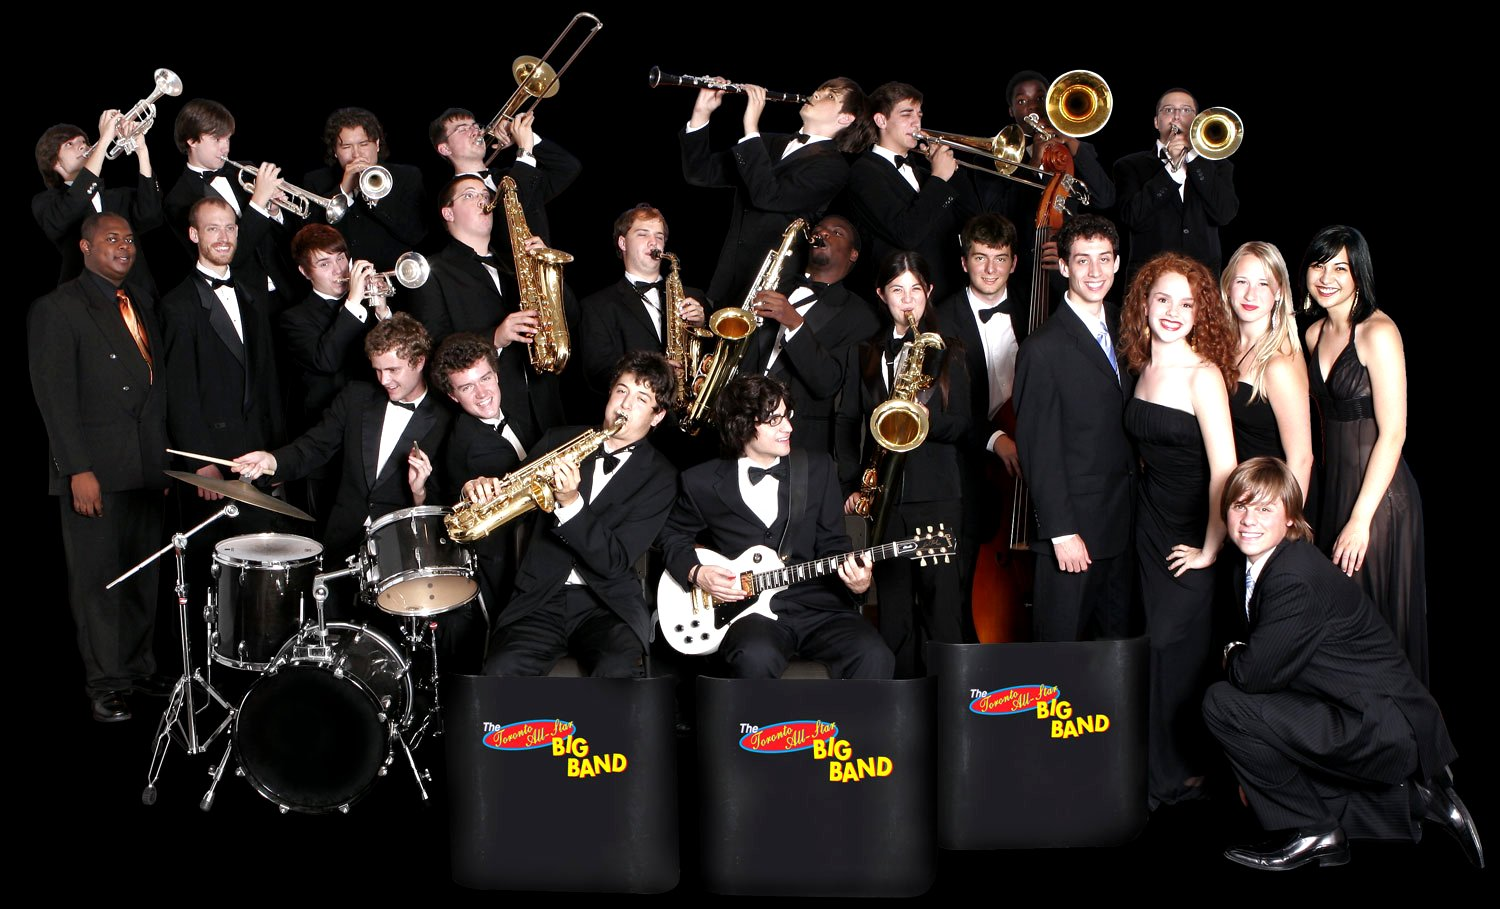 Toronto All Star Big Band Google image from http://www.regenerationcs.org/wp-content/uploads/toronto-all-star-big-band.jpg